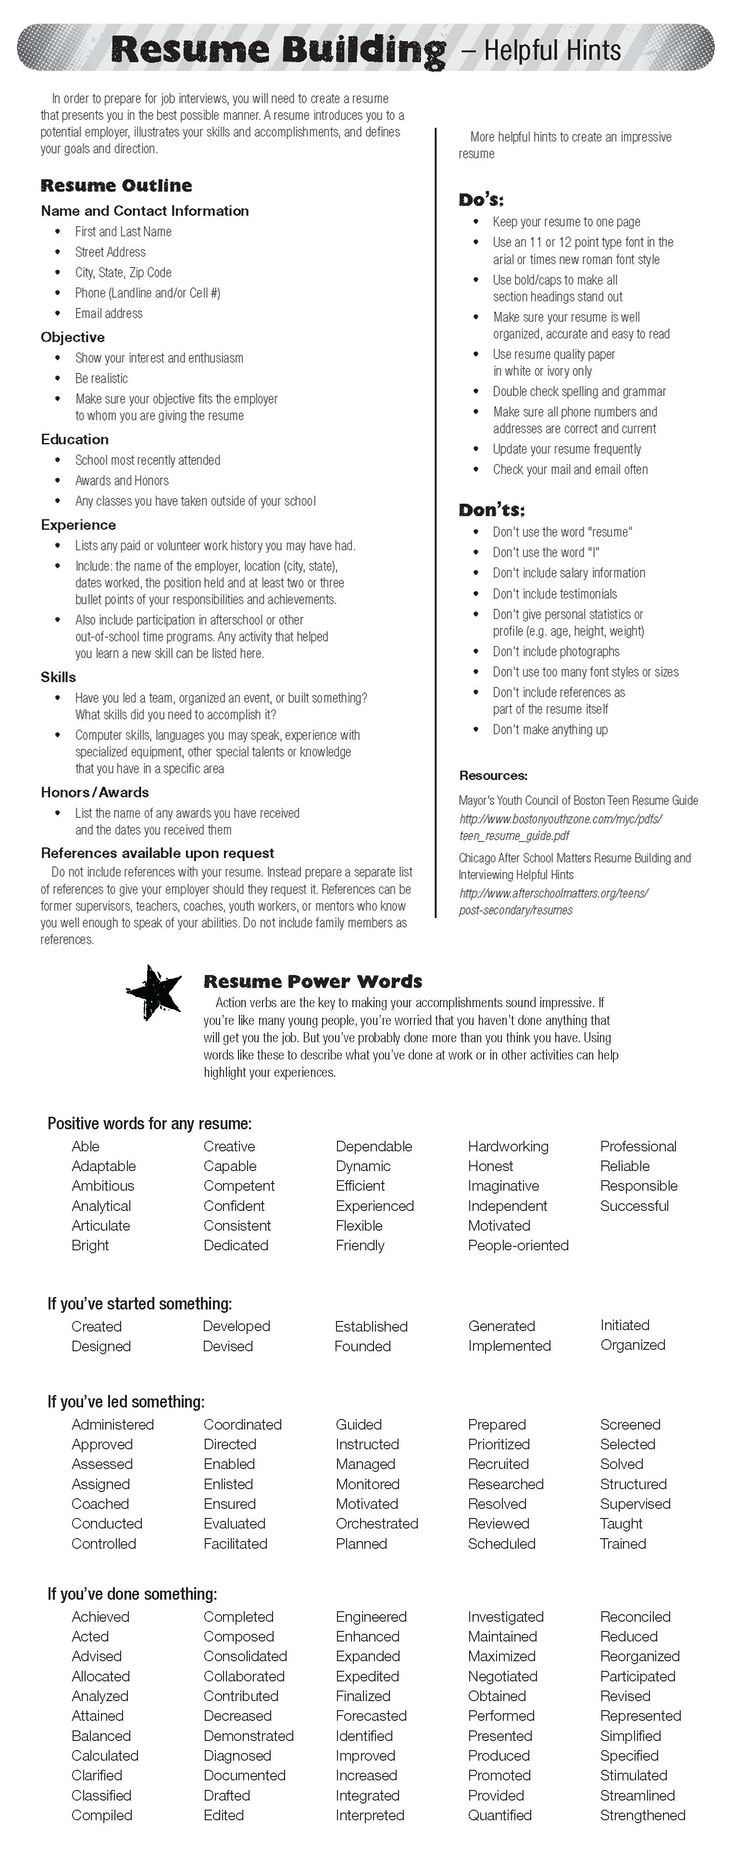 Opposenewapstandardsus  Terrific  Ideas About Resume On Pinterest  Cv Format Resume Cv And  With Hot  Ideas About Resume On Pinterest  Cv Format Resume Cv And Resume Templates With Attractive Sample Pastor Resume Also Downloadable Resumes In Addition Undergraduate Resume Sample And Inside Sales Resume Examples As Well As One Day Resume Additionally Job Resume Layout From Pinterestcom With Opposenewapstandardsus  Hot  Ideas About Resume On Pinterest  Cv Format Resume Cv And  With Attractive  Ideas About Resume On Pinterest  Cv Format Resume Cv And Resume Templates And Terrific Sample Pastor Resume Also Downloadable Resumes In Addition Undergraduate Resume Sample From Pinterestcom